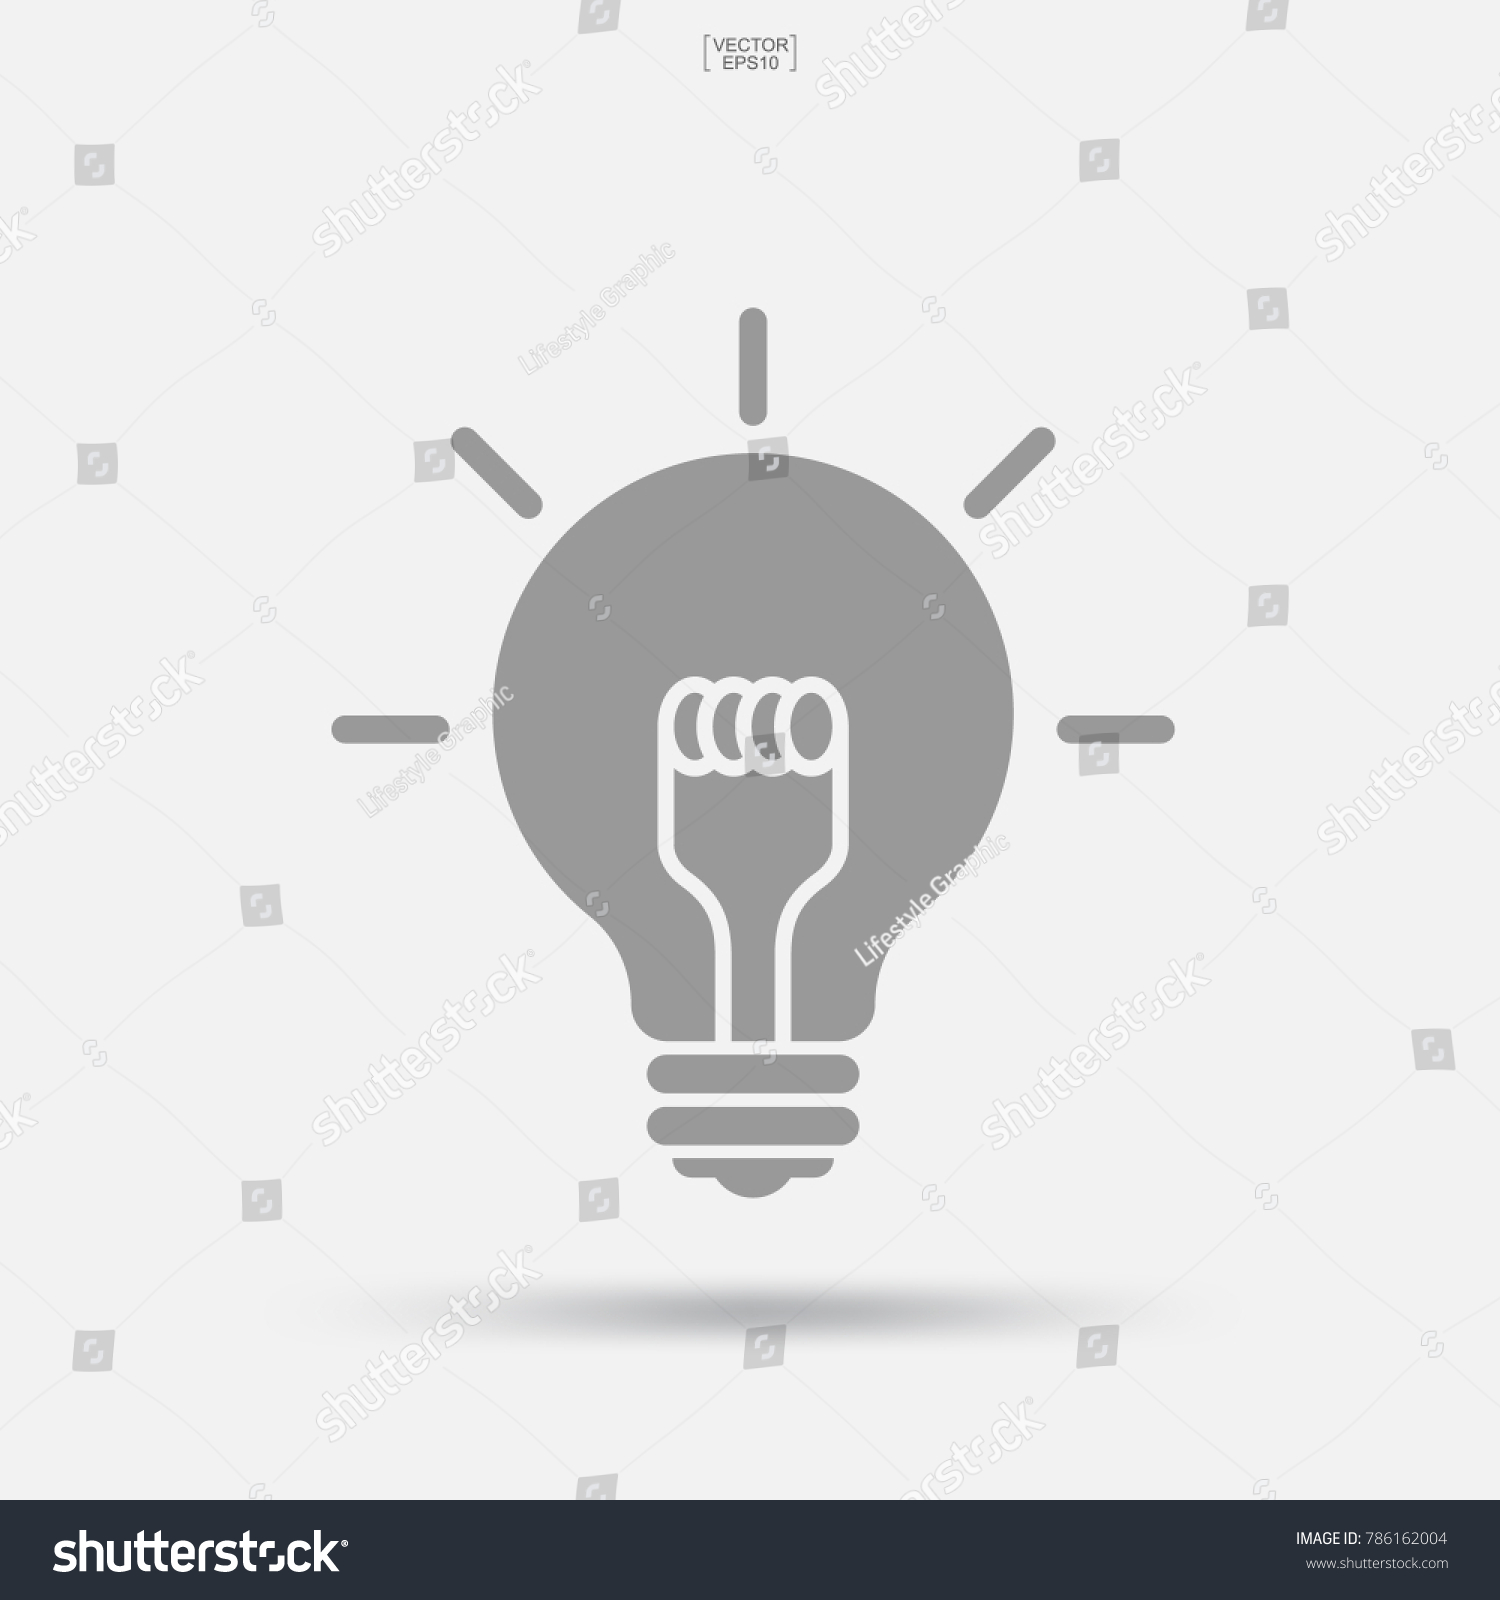 Awesome Light Symbol Electrical Pattern - Wiring Diagram Ideas ...